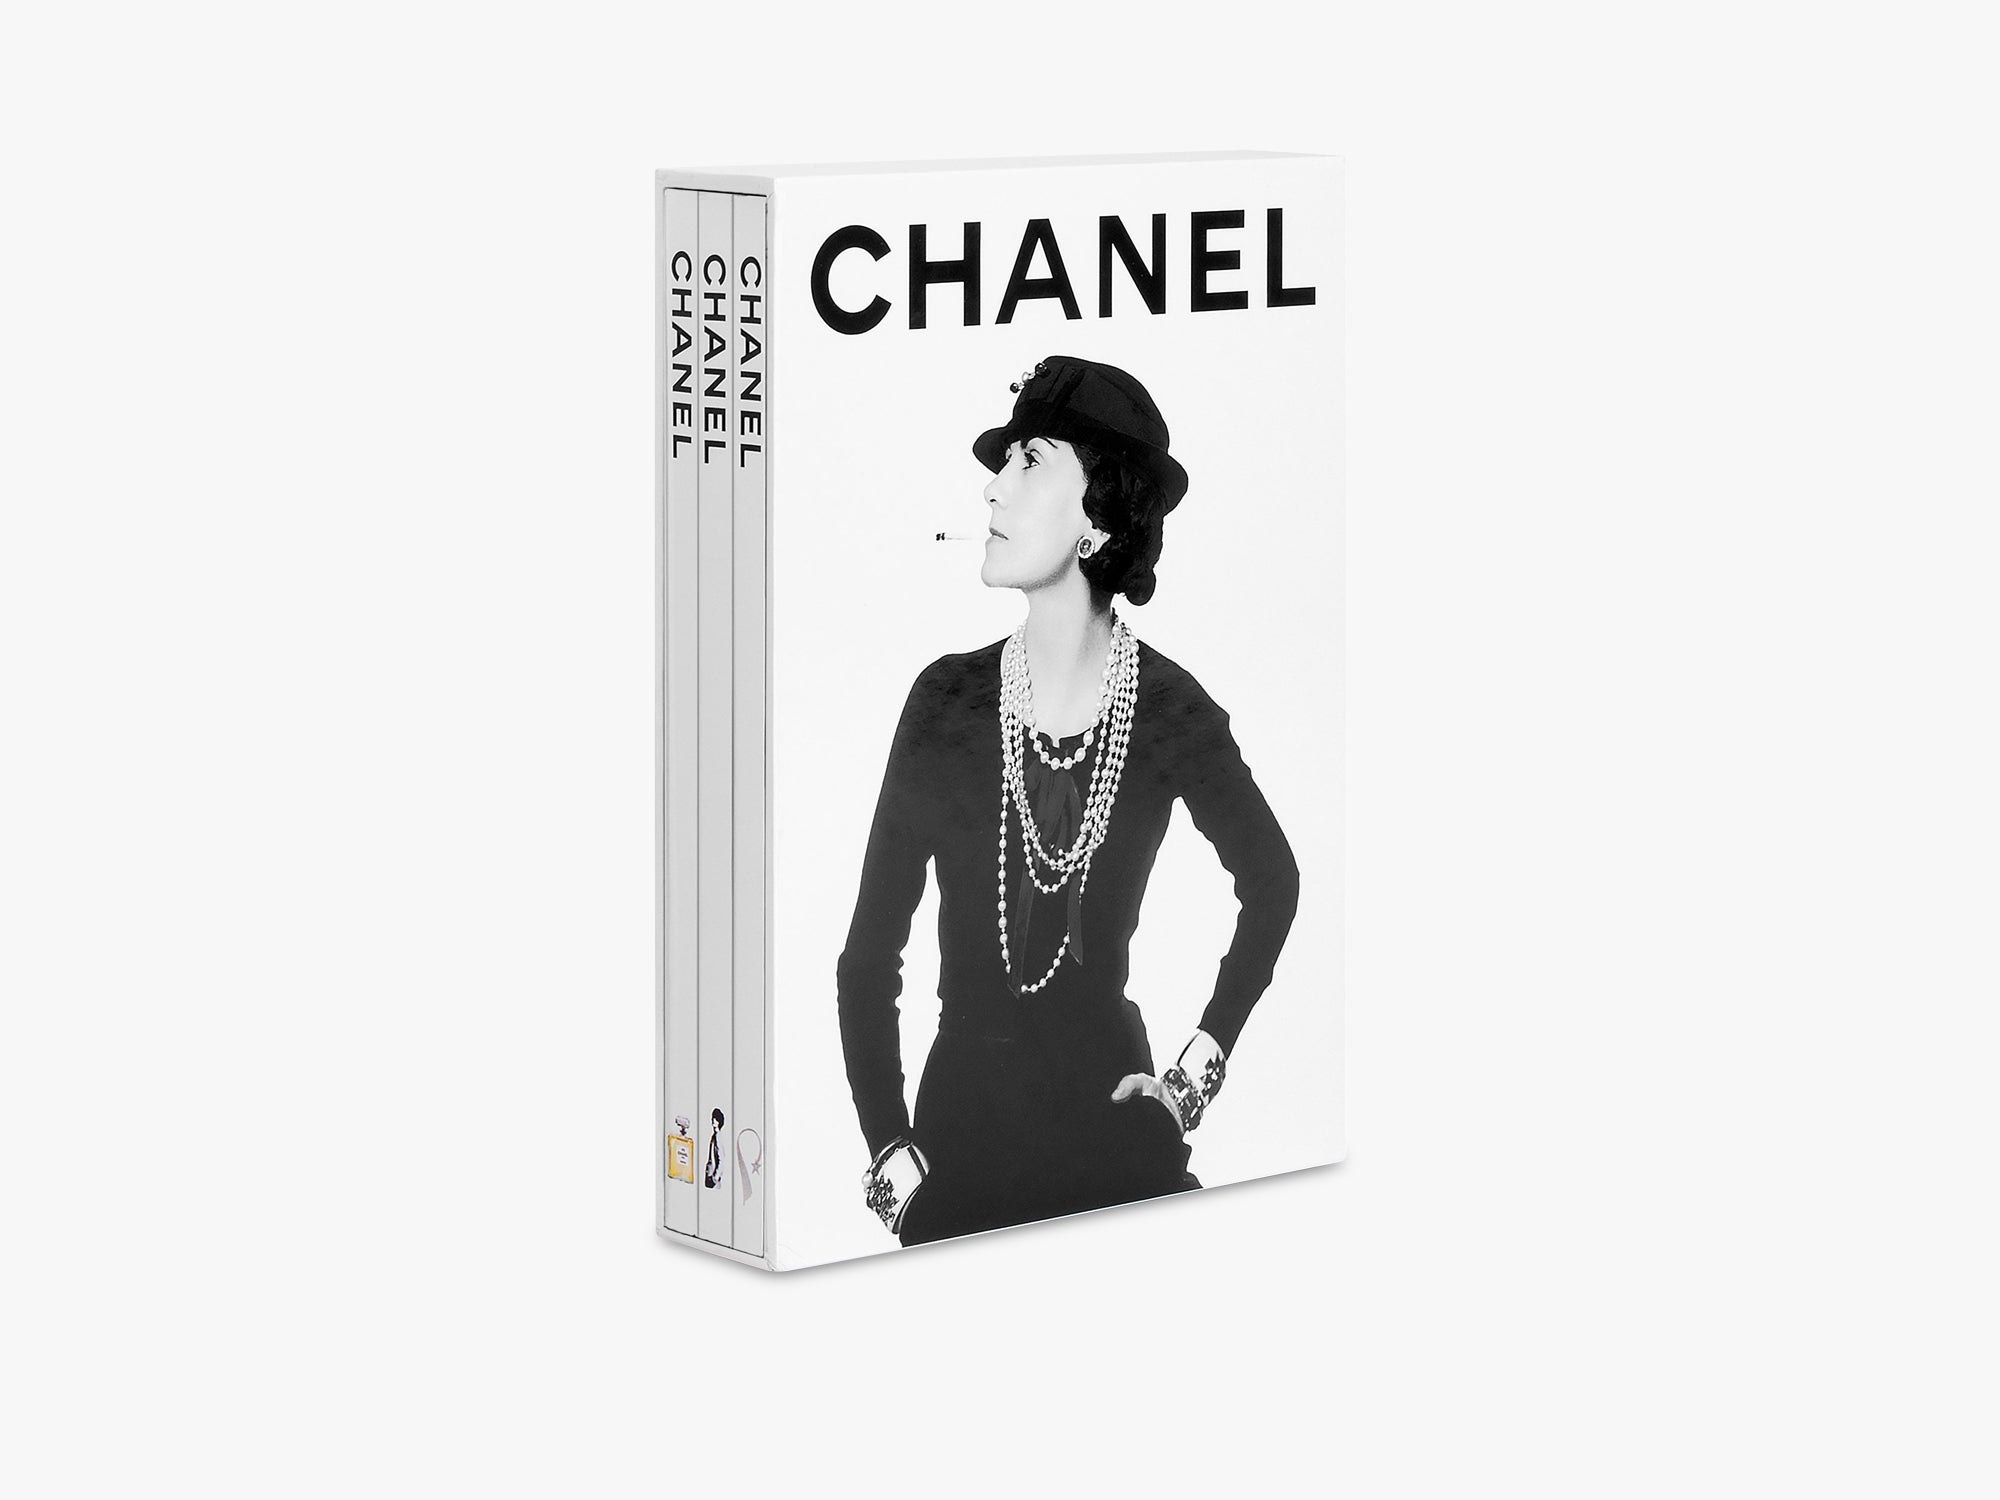 Chanel 3-Book Slipcase fra Assouline